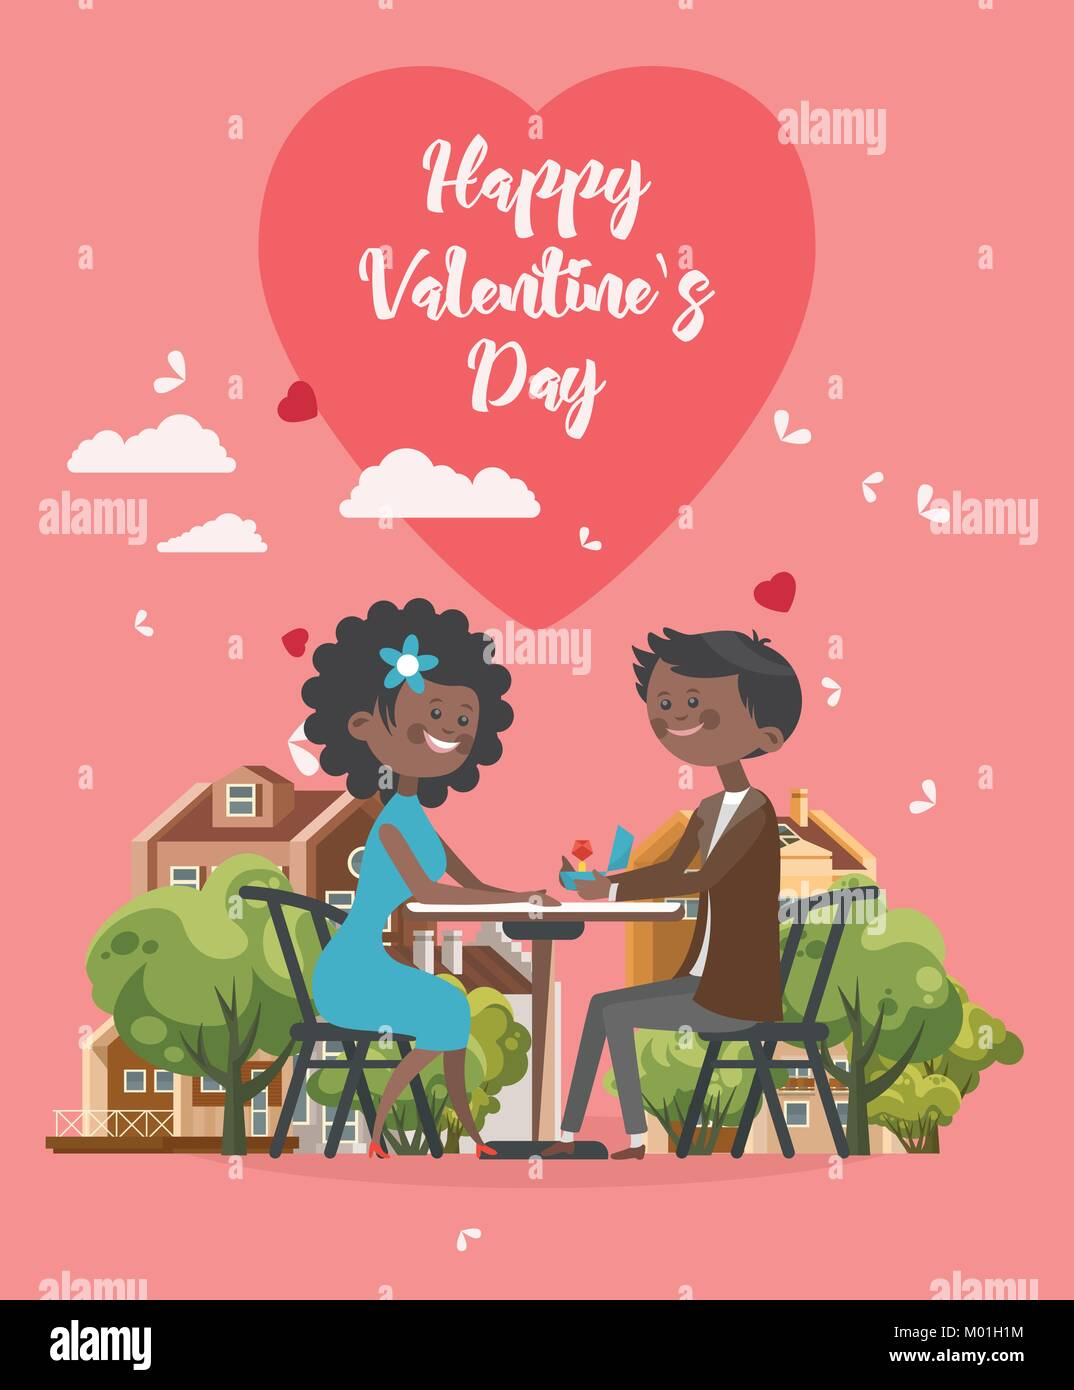 African american stock vector images alamy happy valentines day vector illustration greeting card with young african american couple in love kristyandbryce Image collections